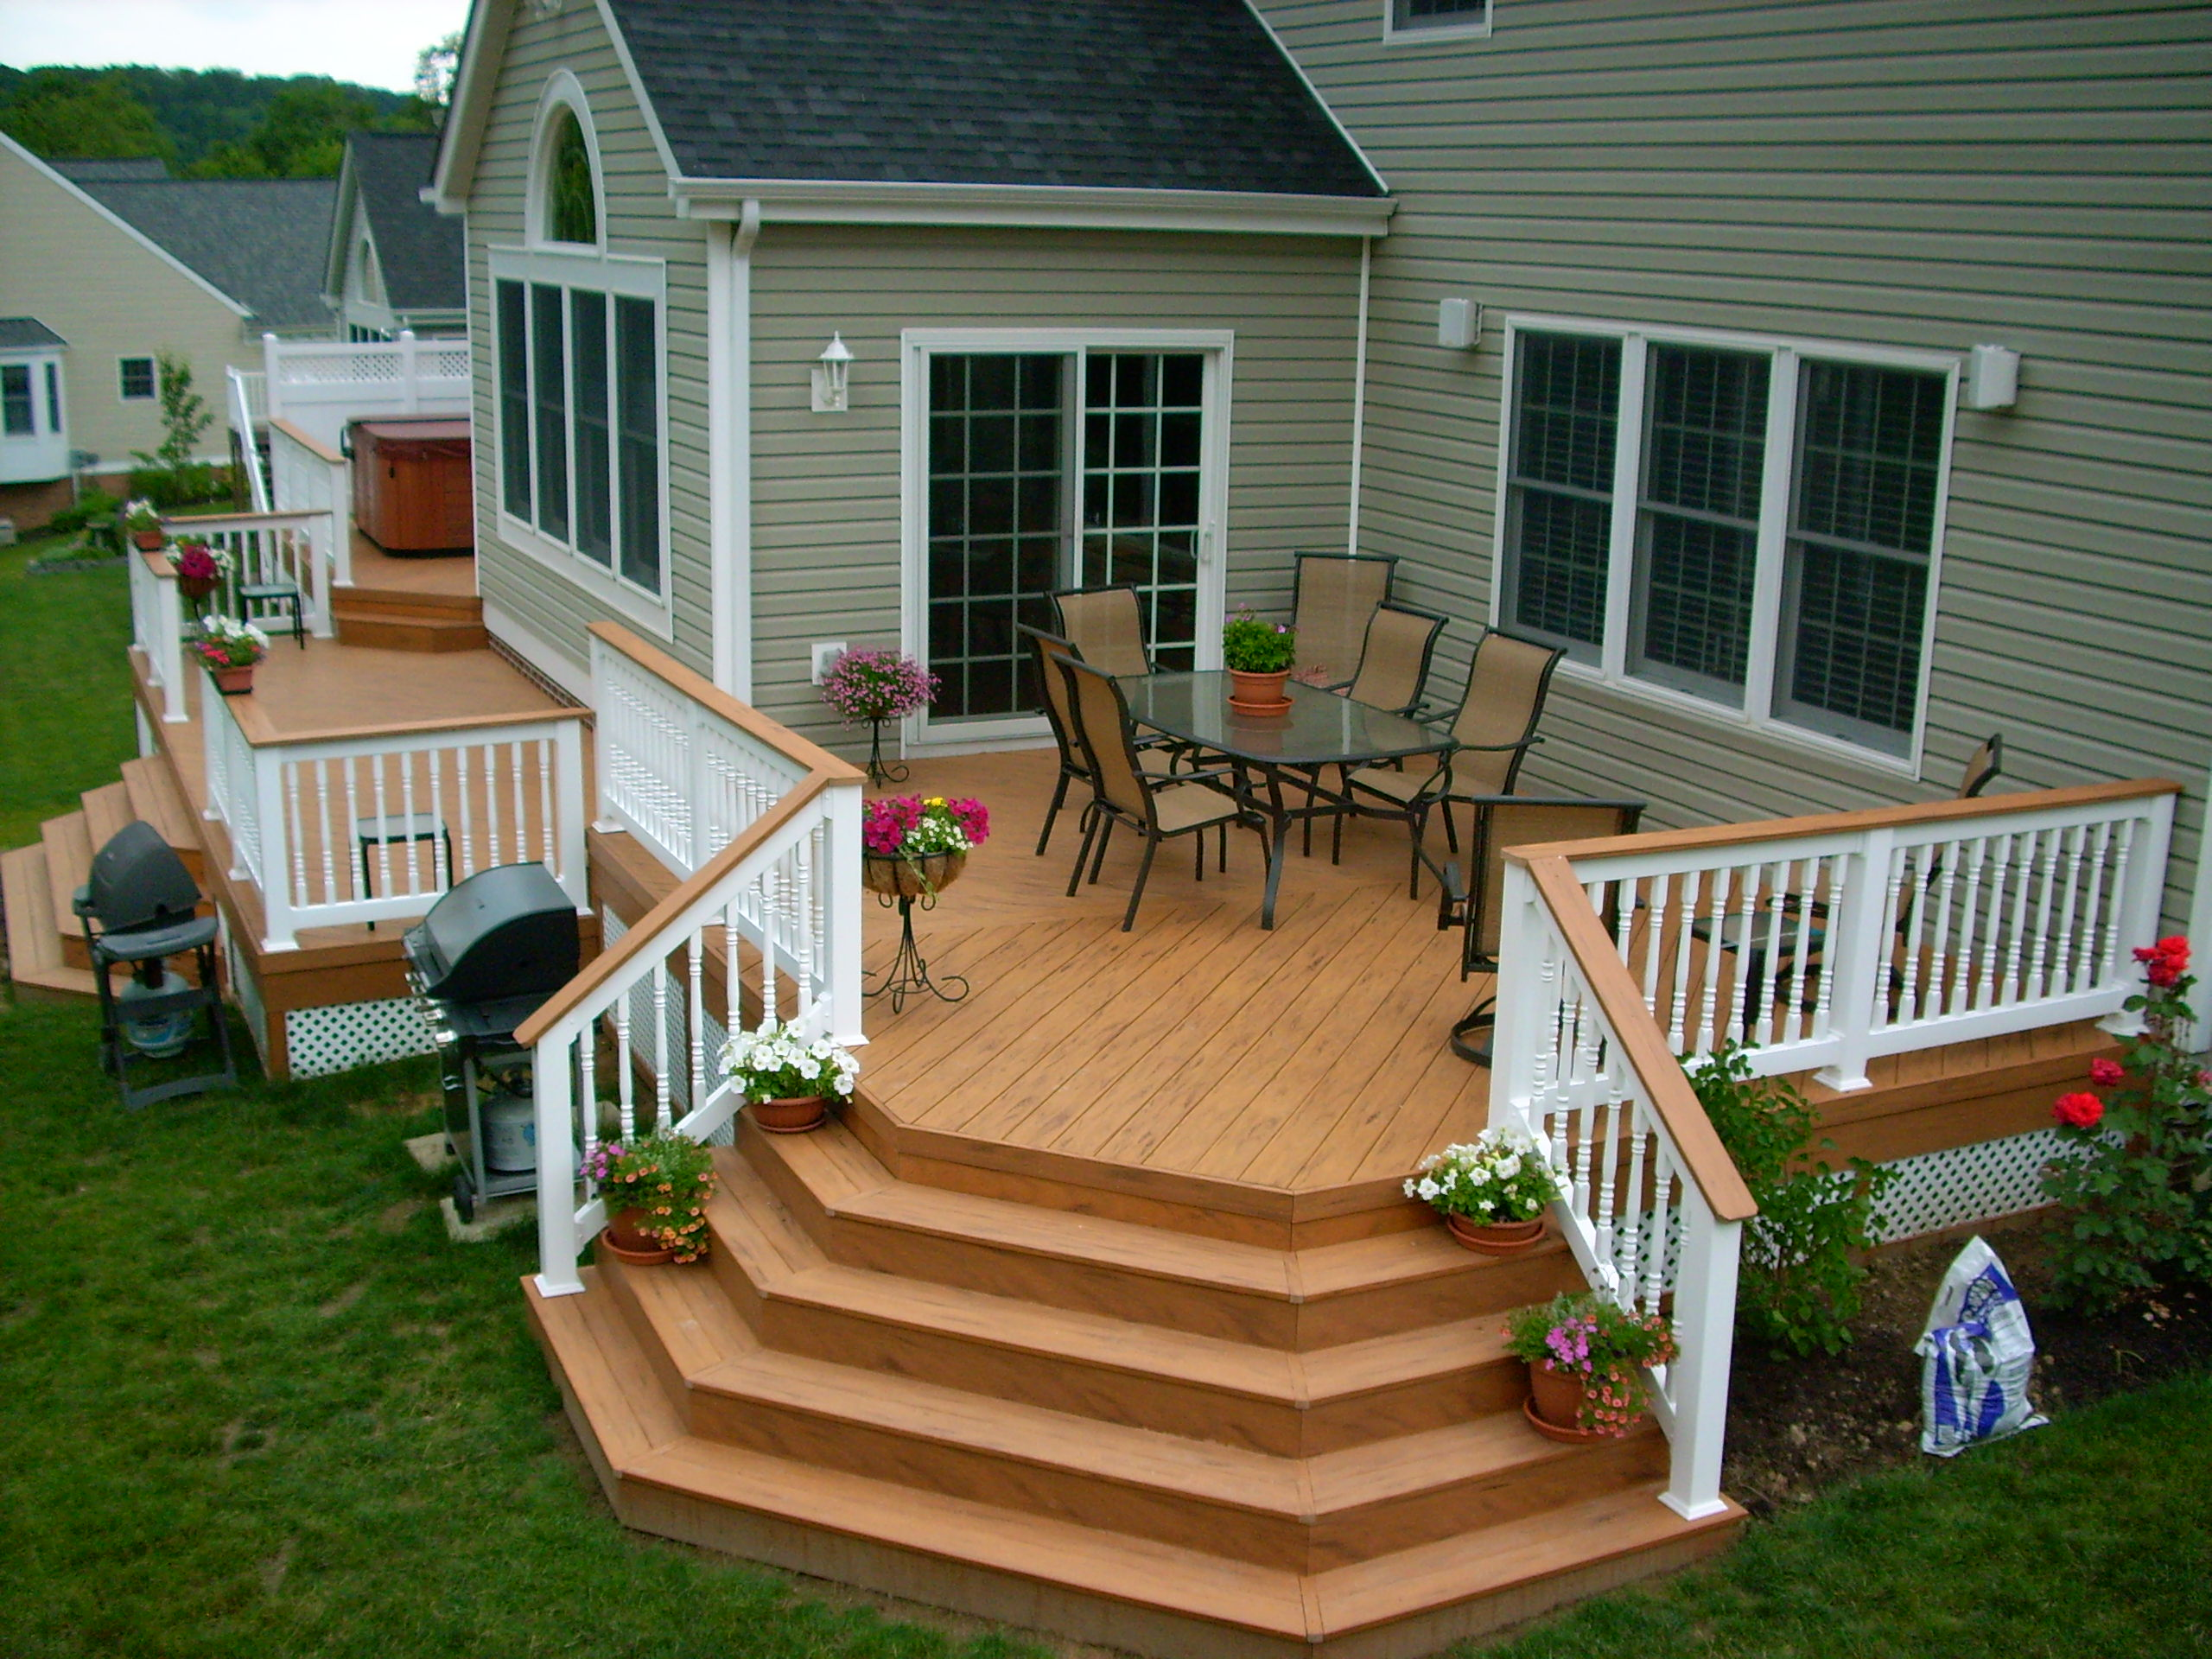 Archadeck Custom Decks And Patio Rooms In Pittsburgh